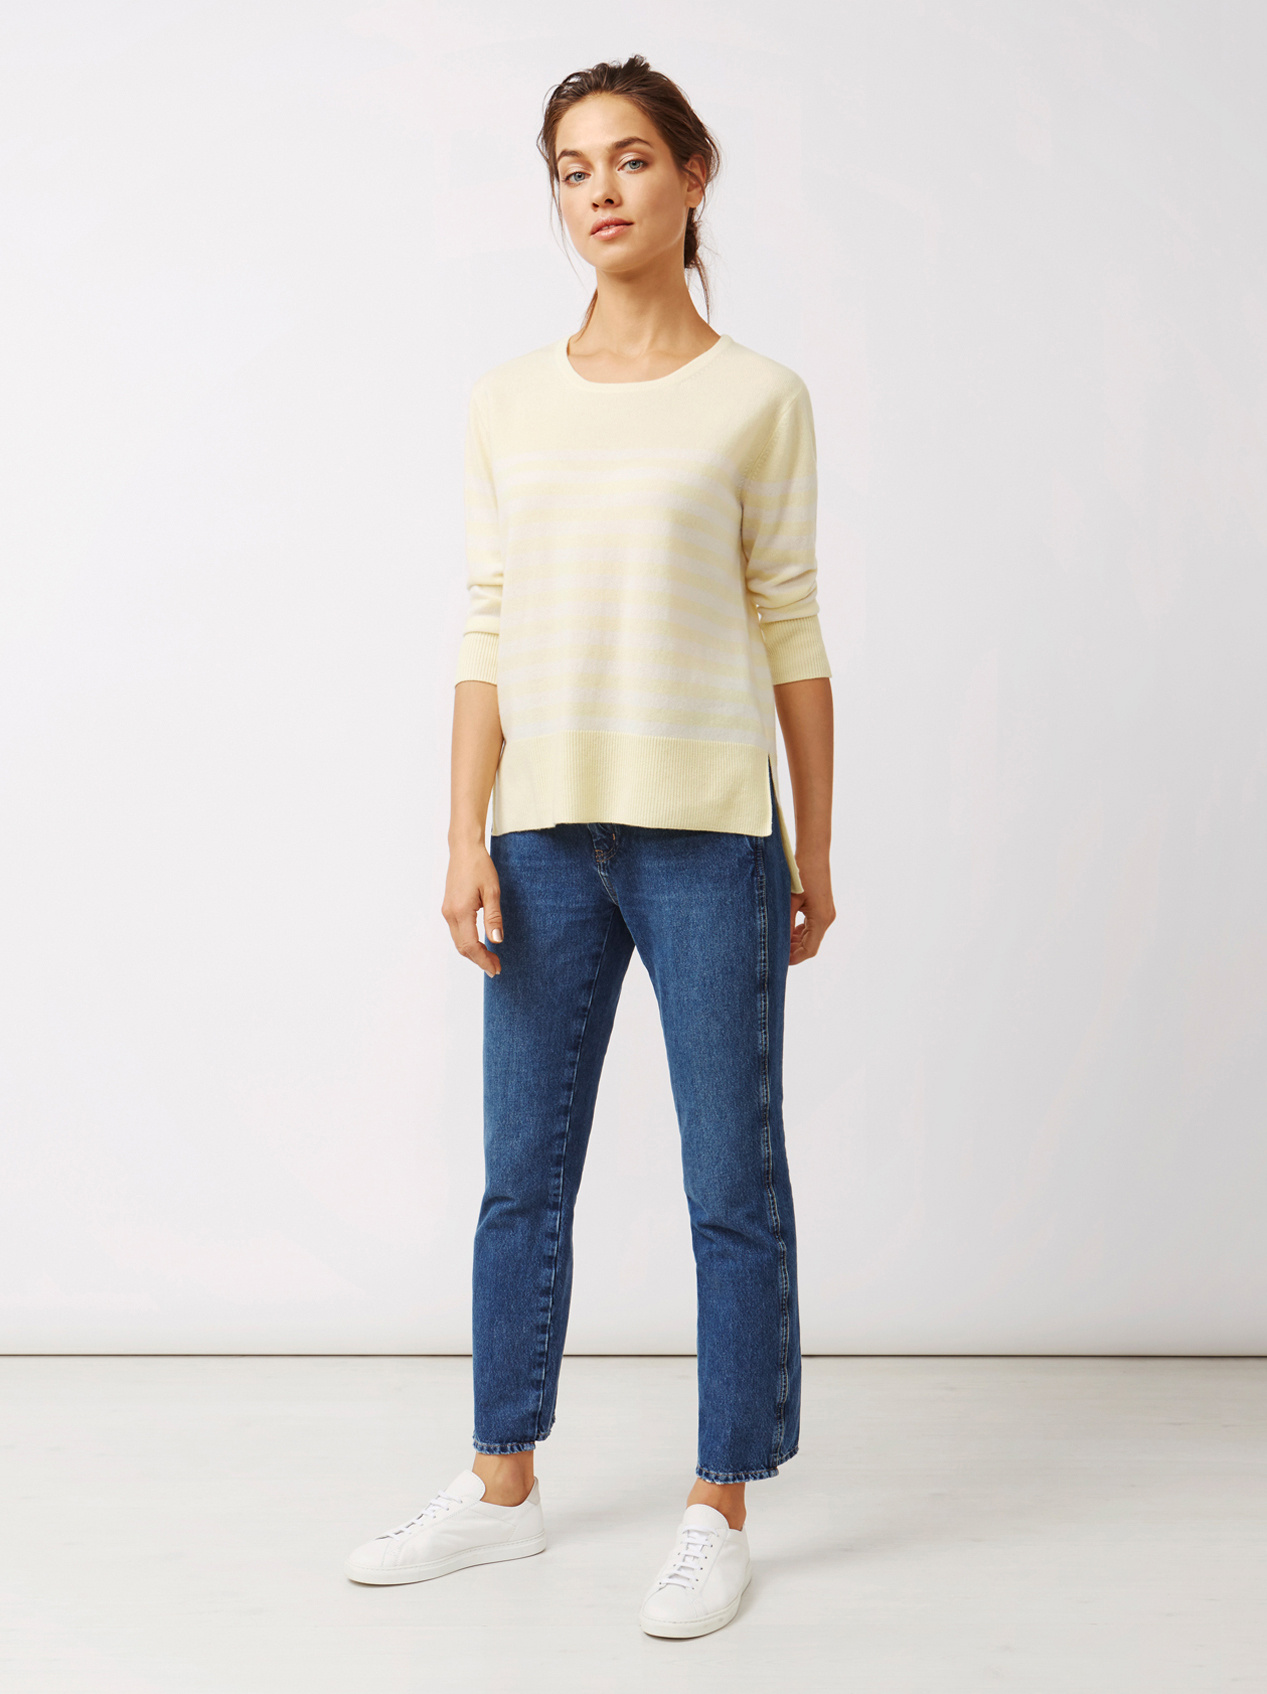 Soft Goat Women's Striped Sweater Limoncello